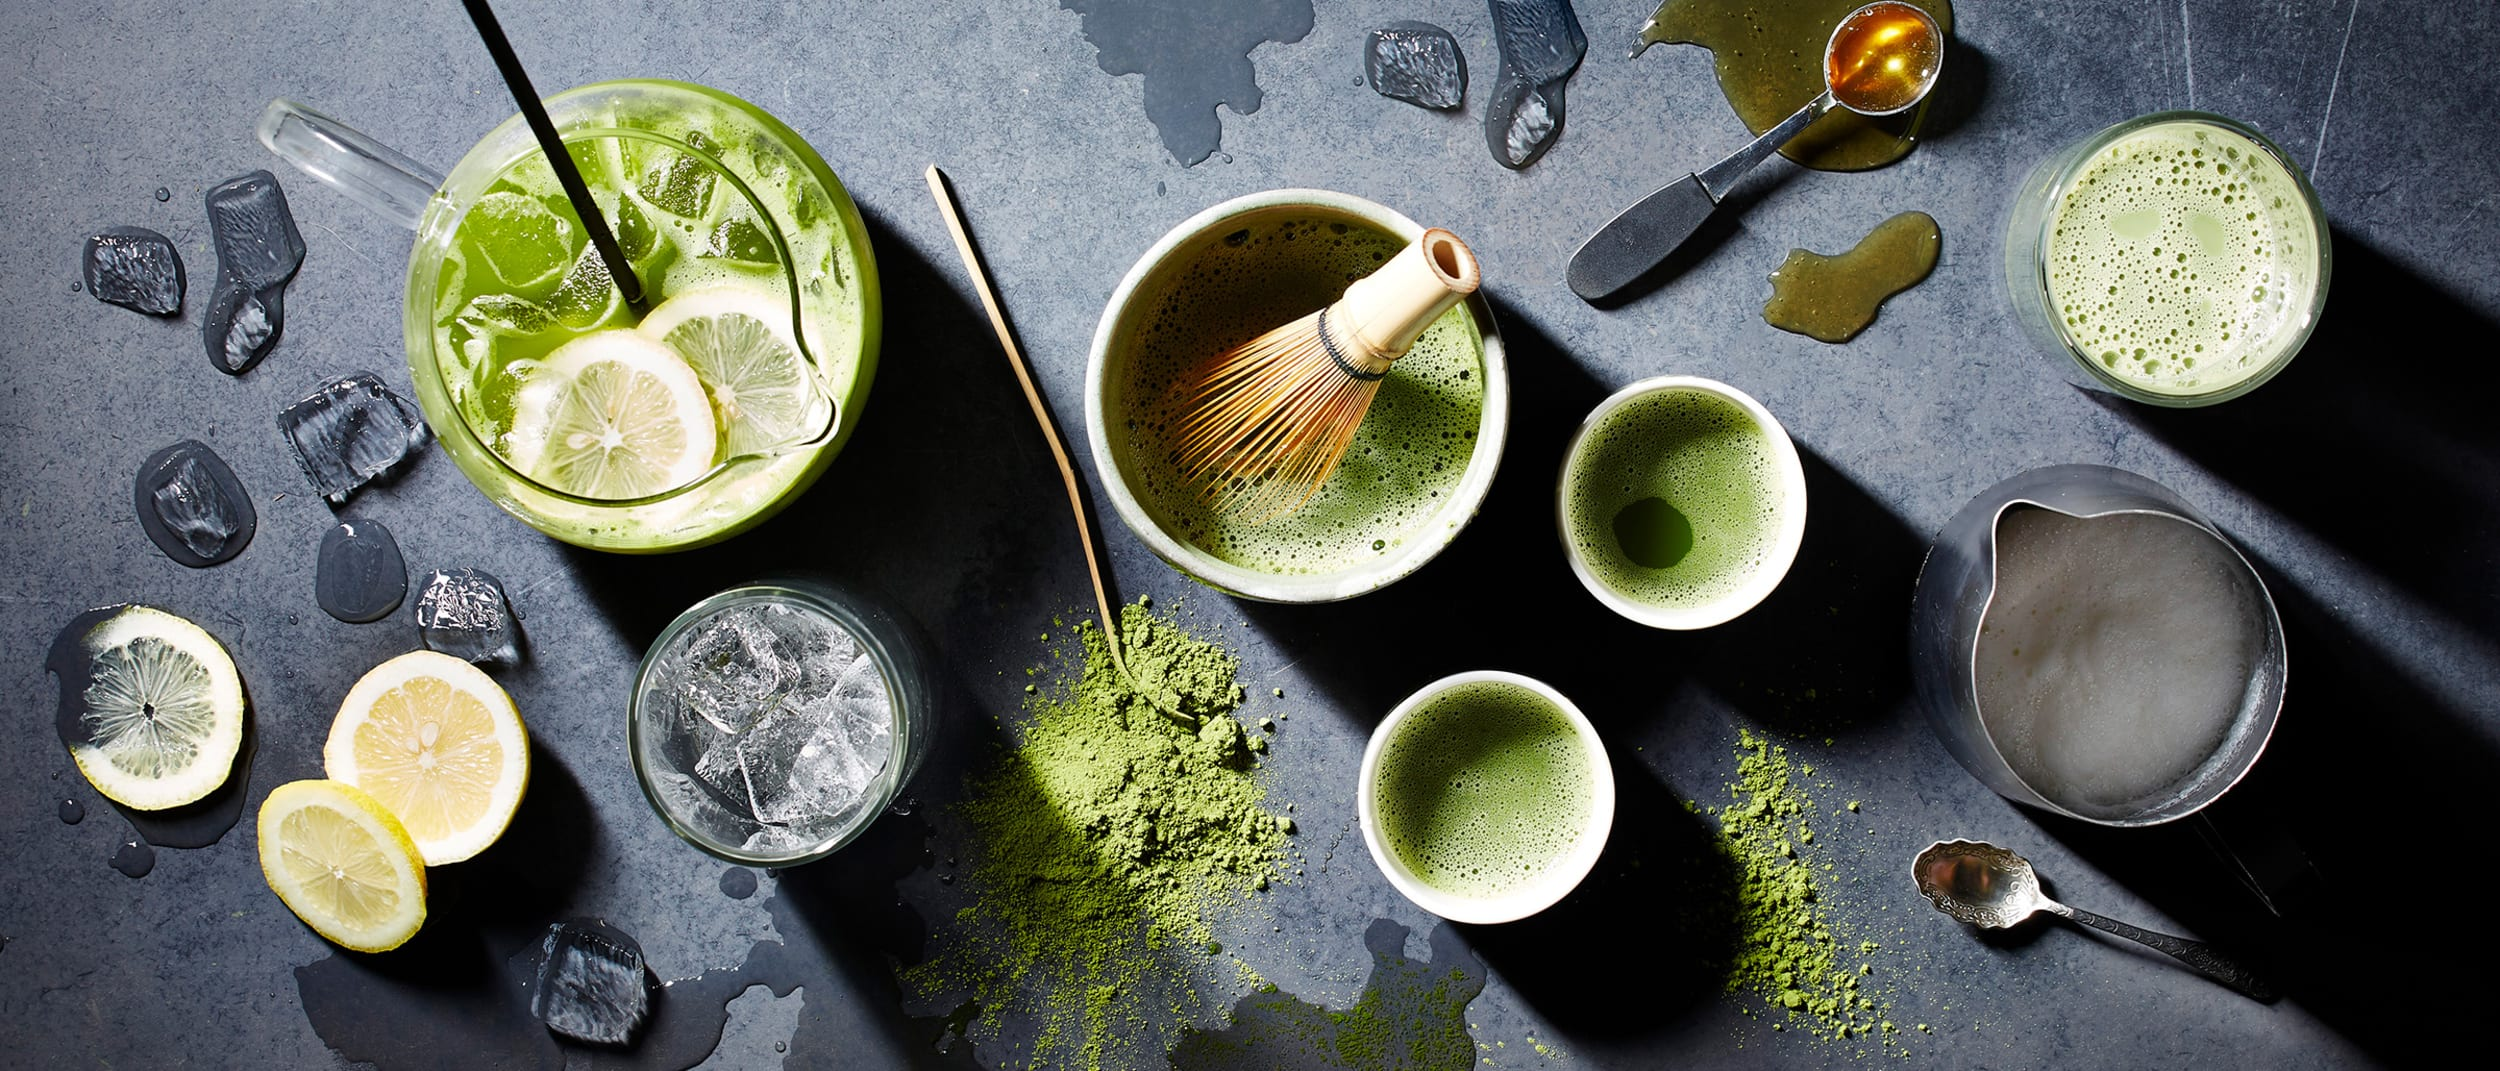 T2: new matcha blends have just arrived